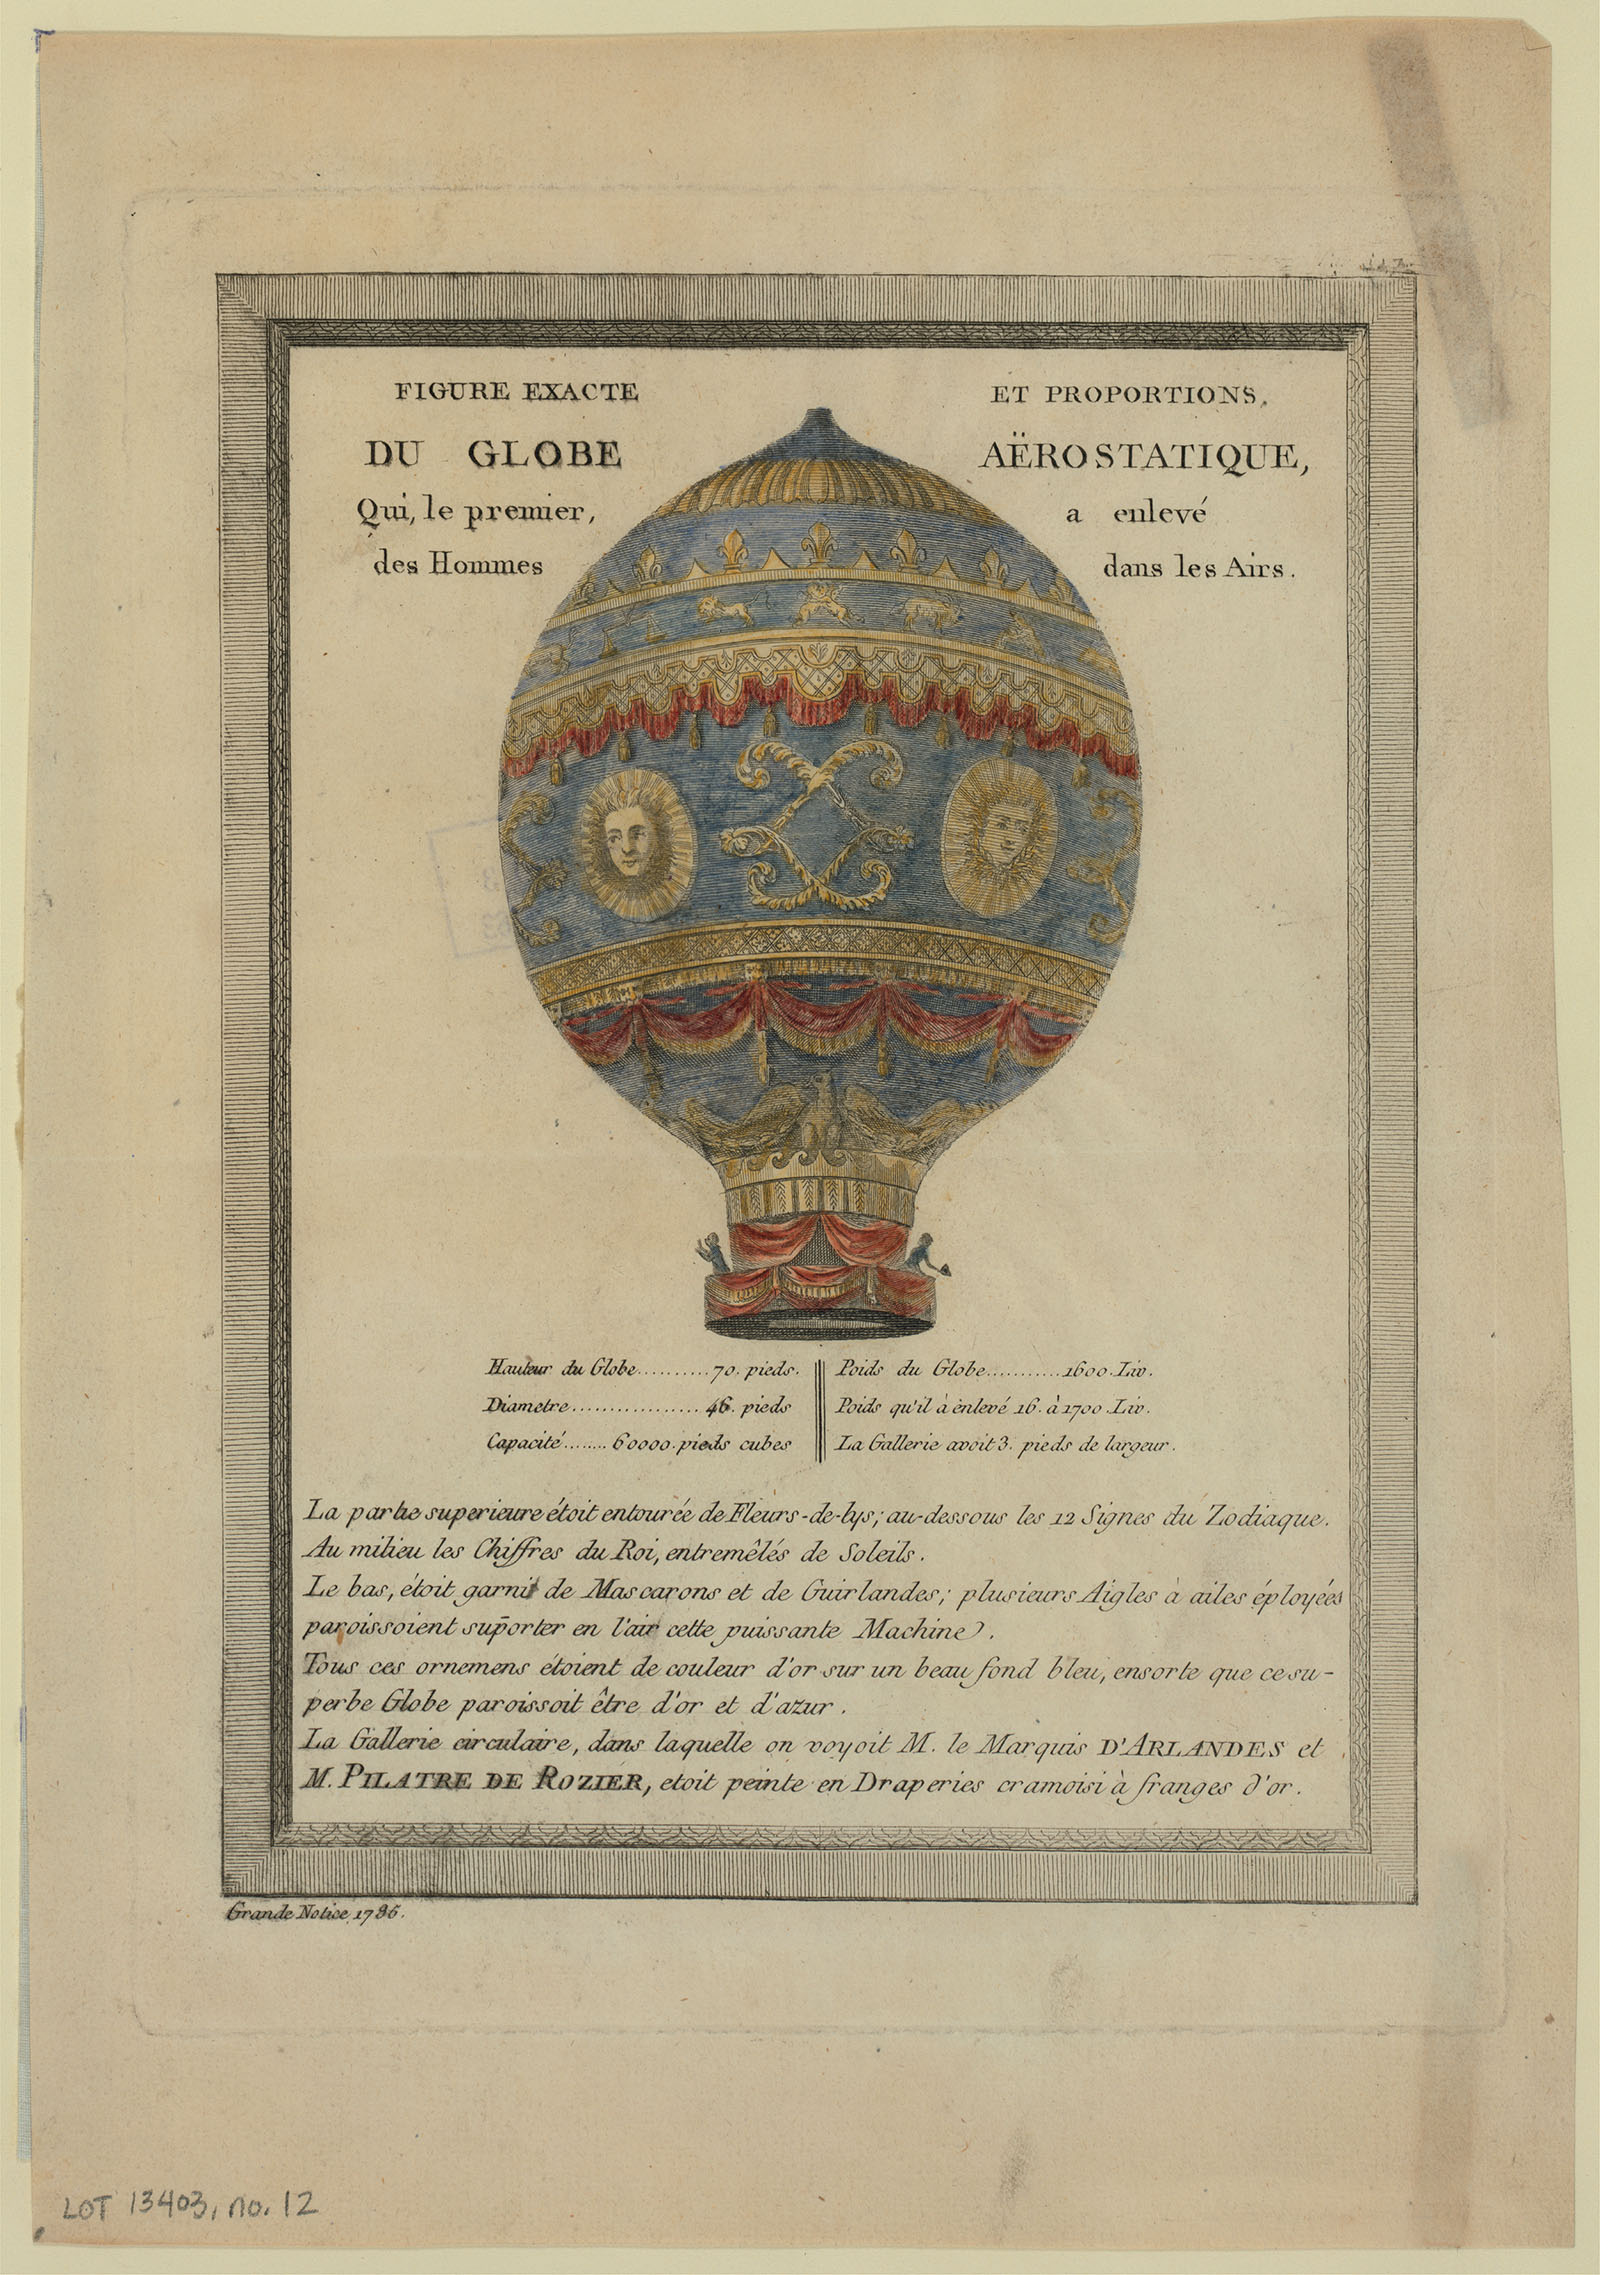 Print of an early hot air balloon.